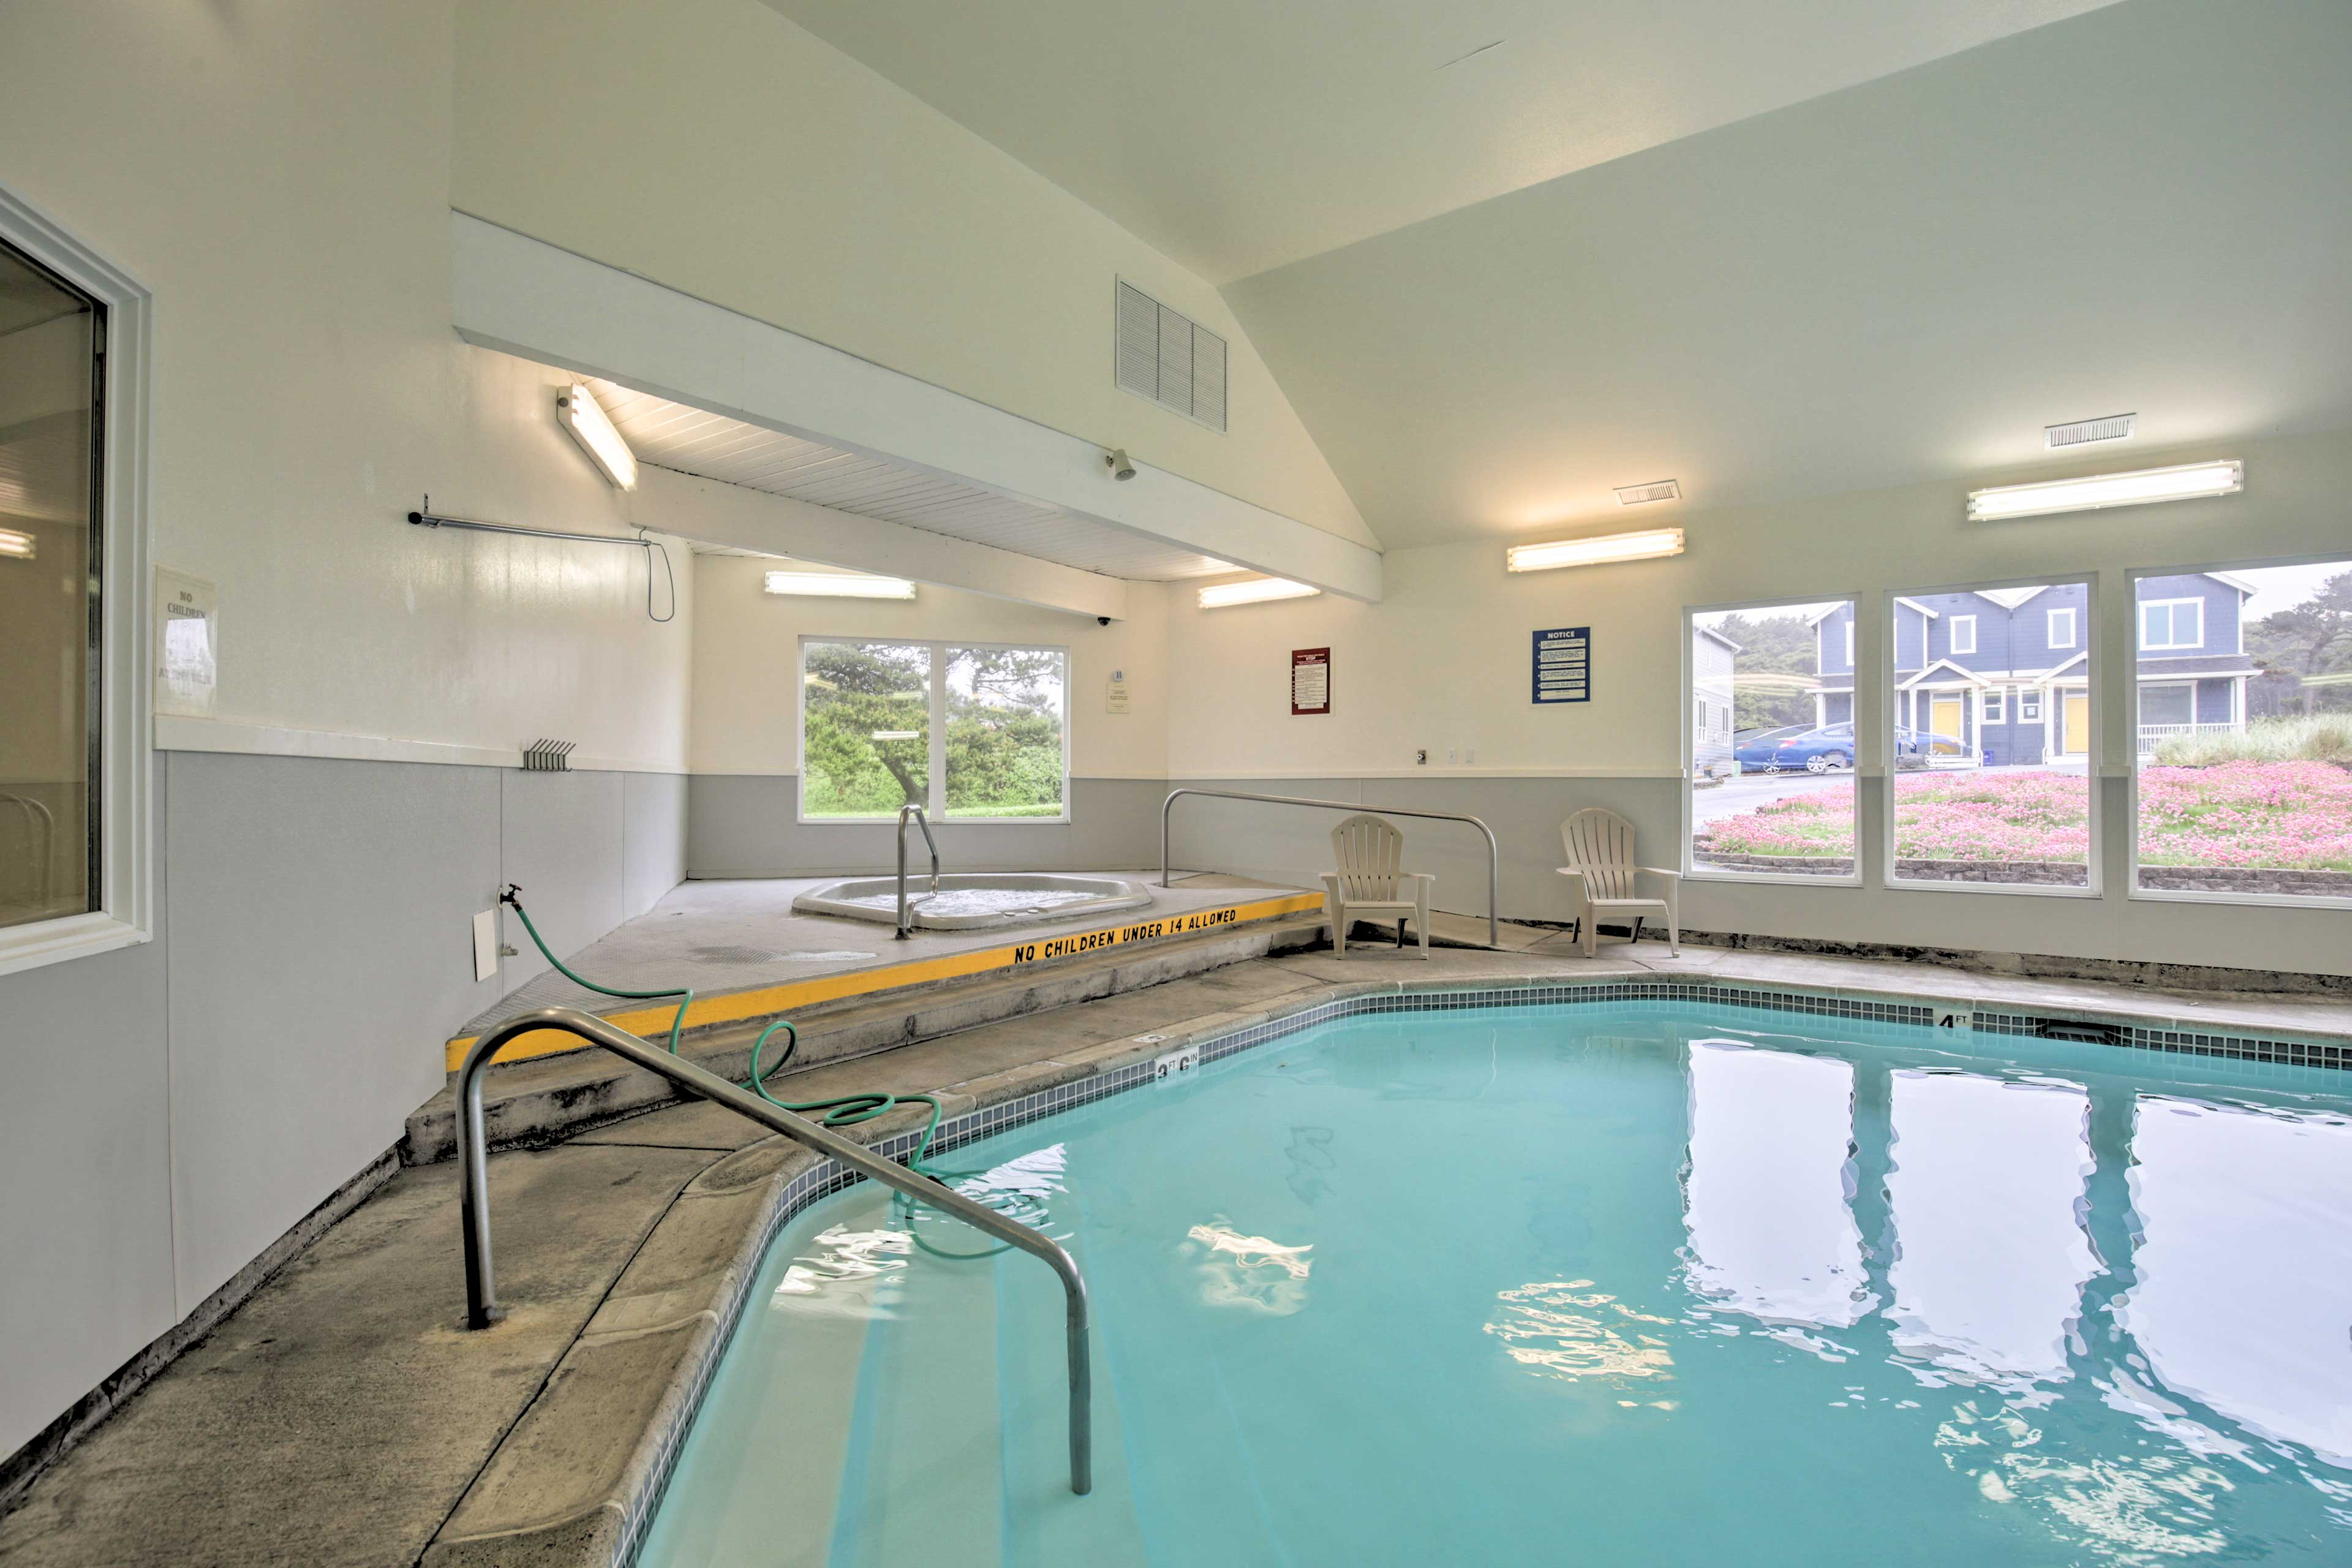 Spend afternoons splashing in the indoor pool & spa.